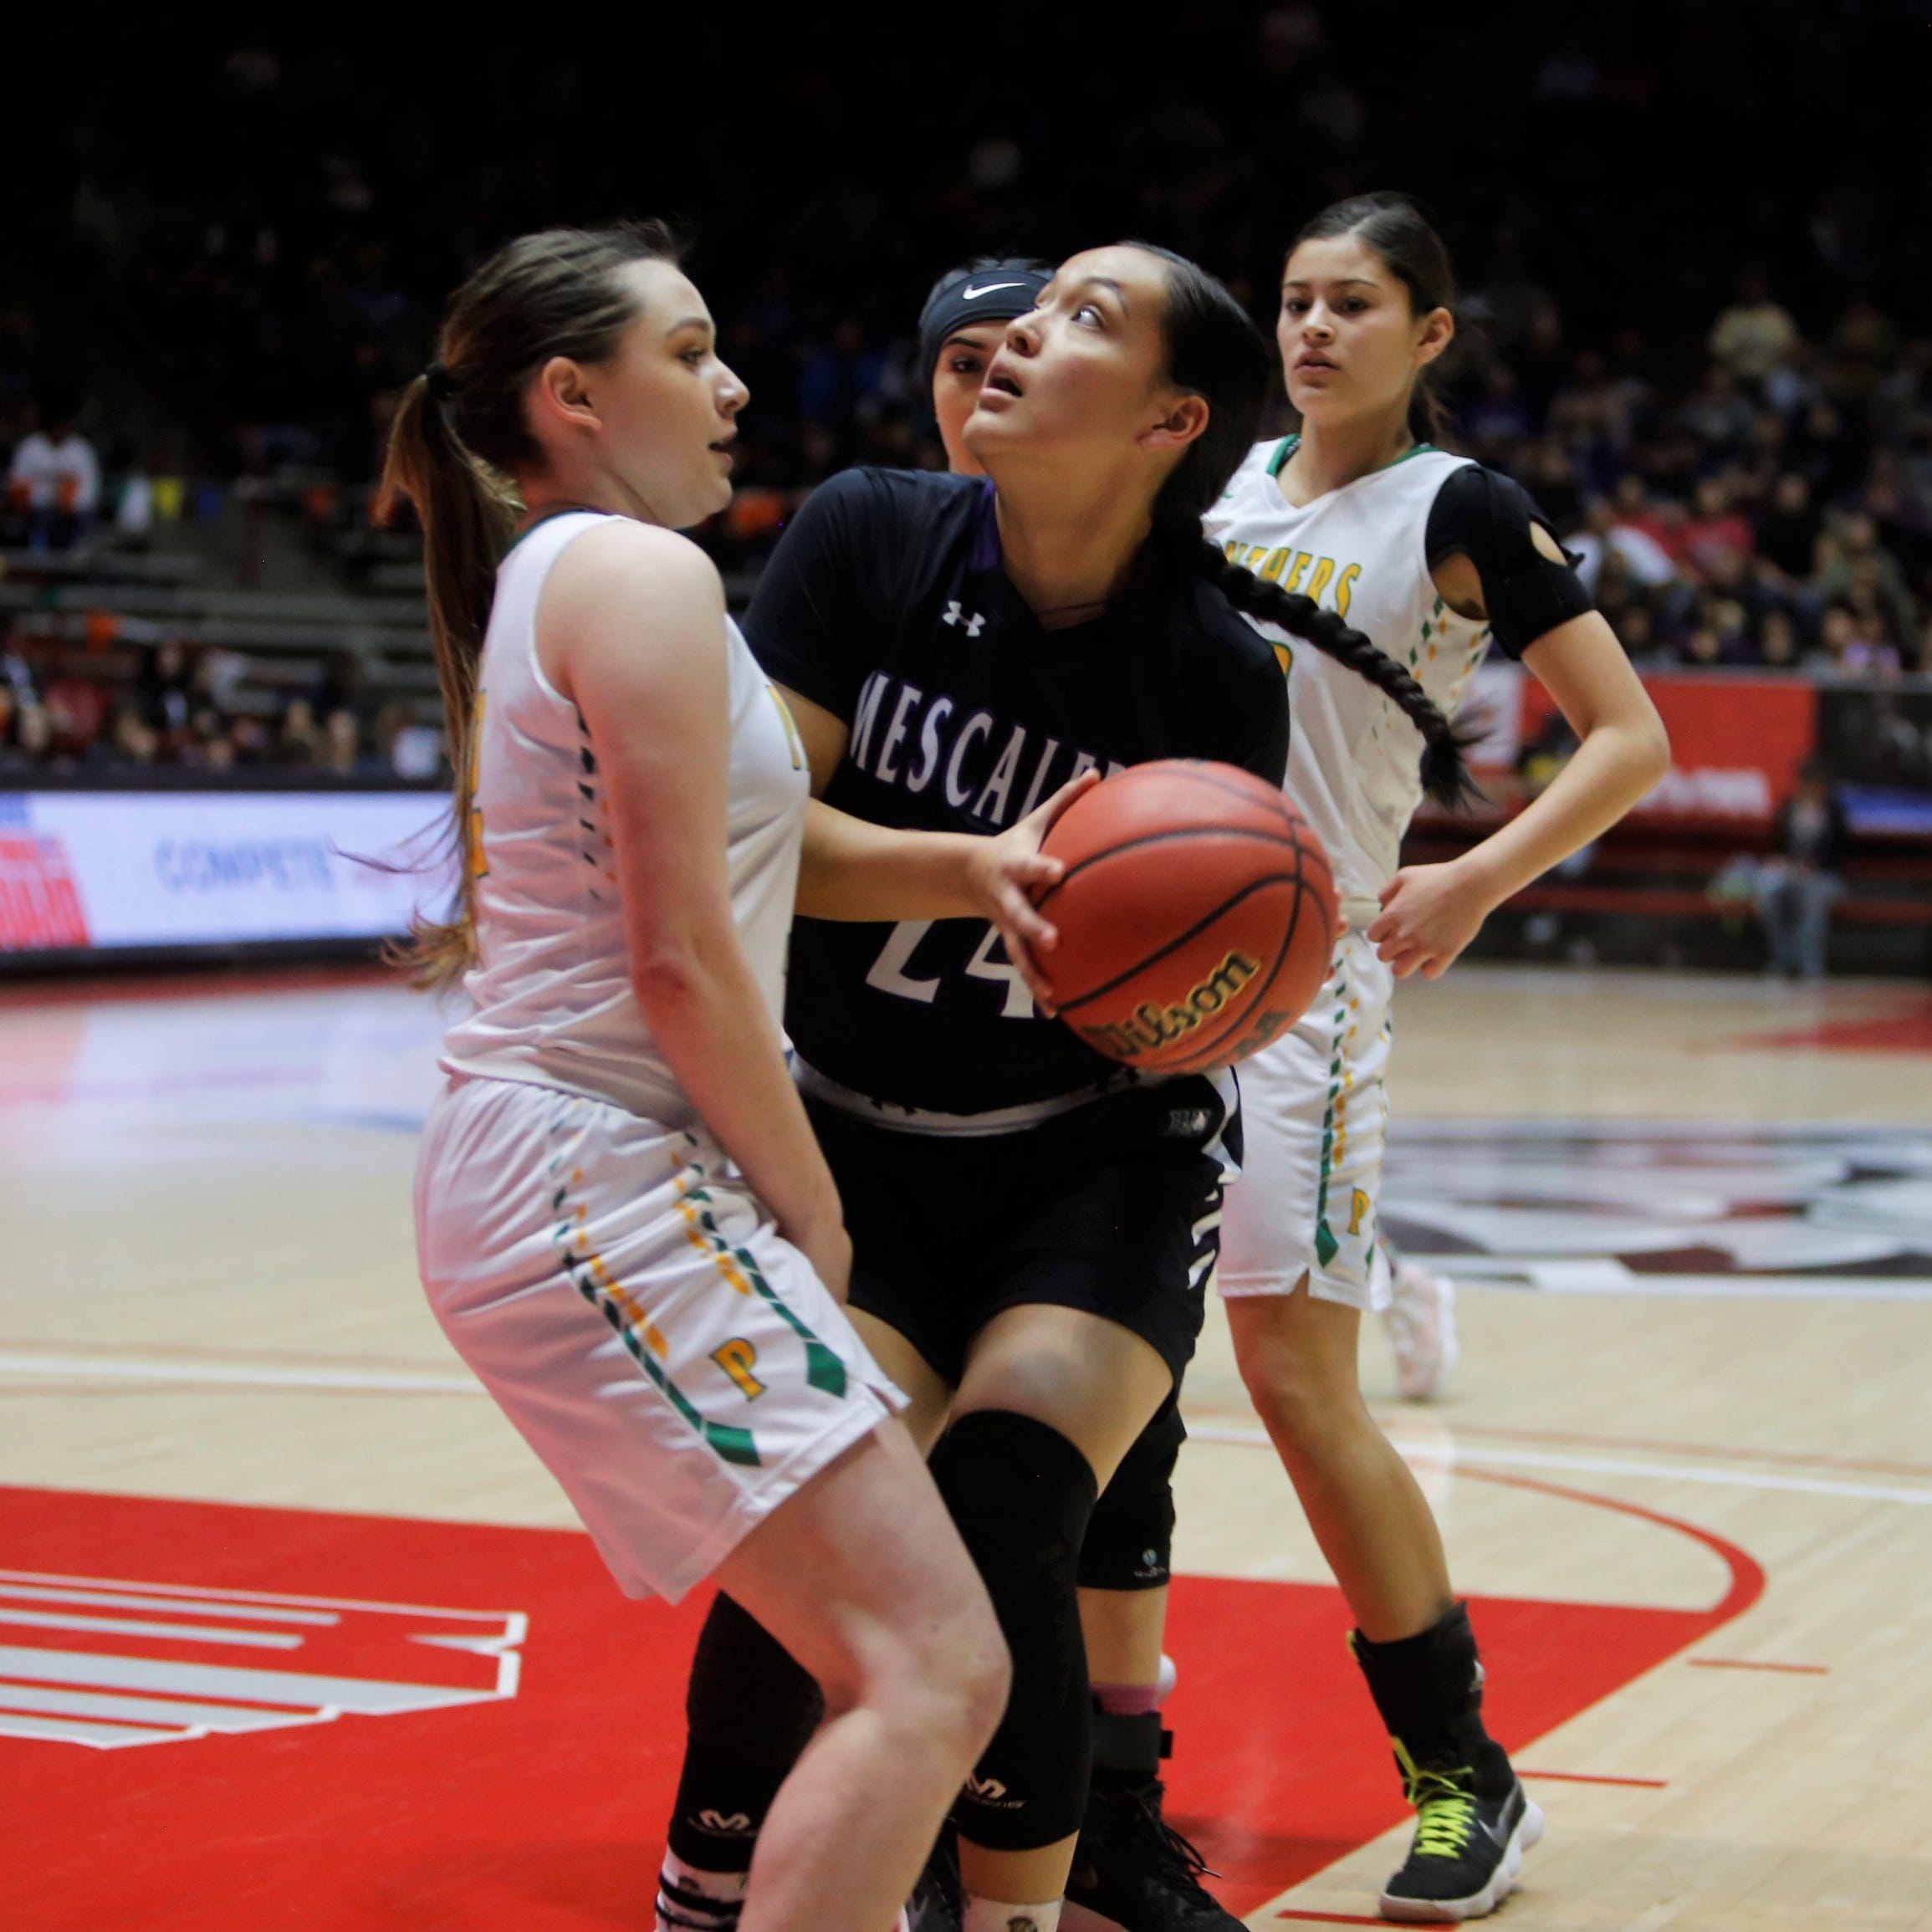 Pecos tops Mescalero in OT to claim 2A title